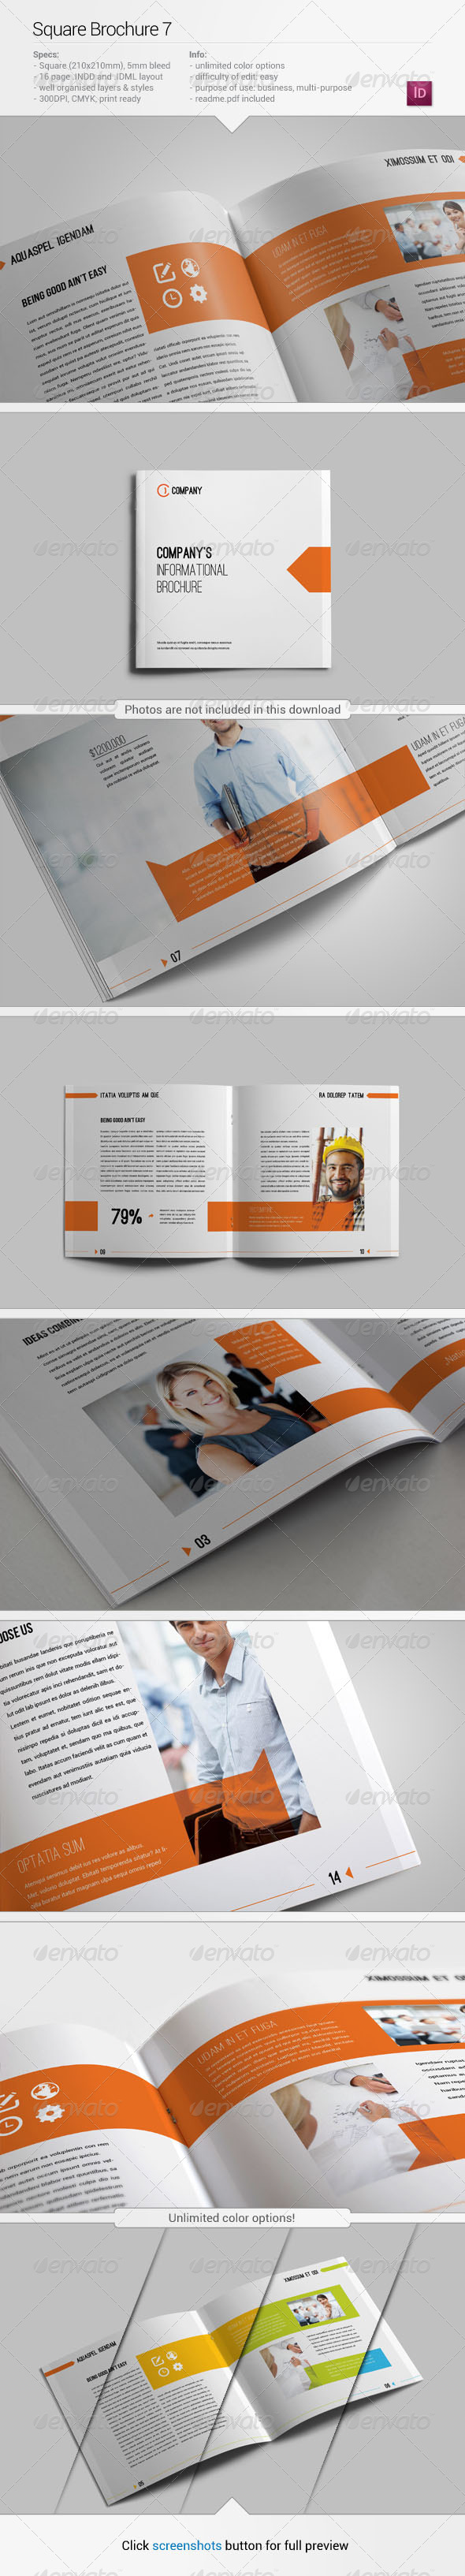 GraphicRiver Square Brochure 7 5428302